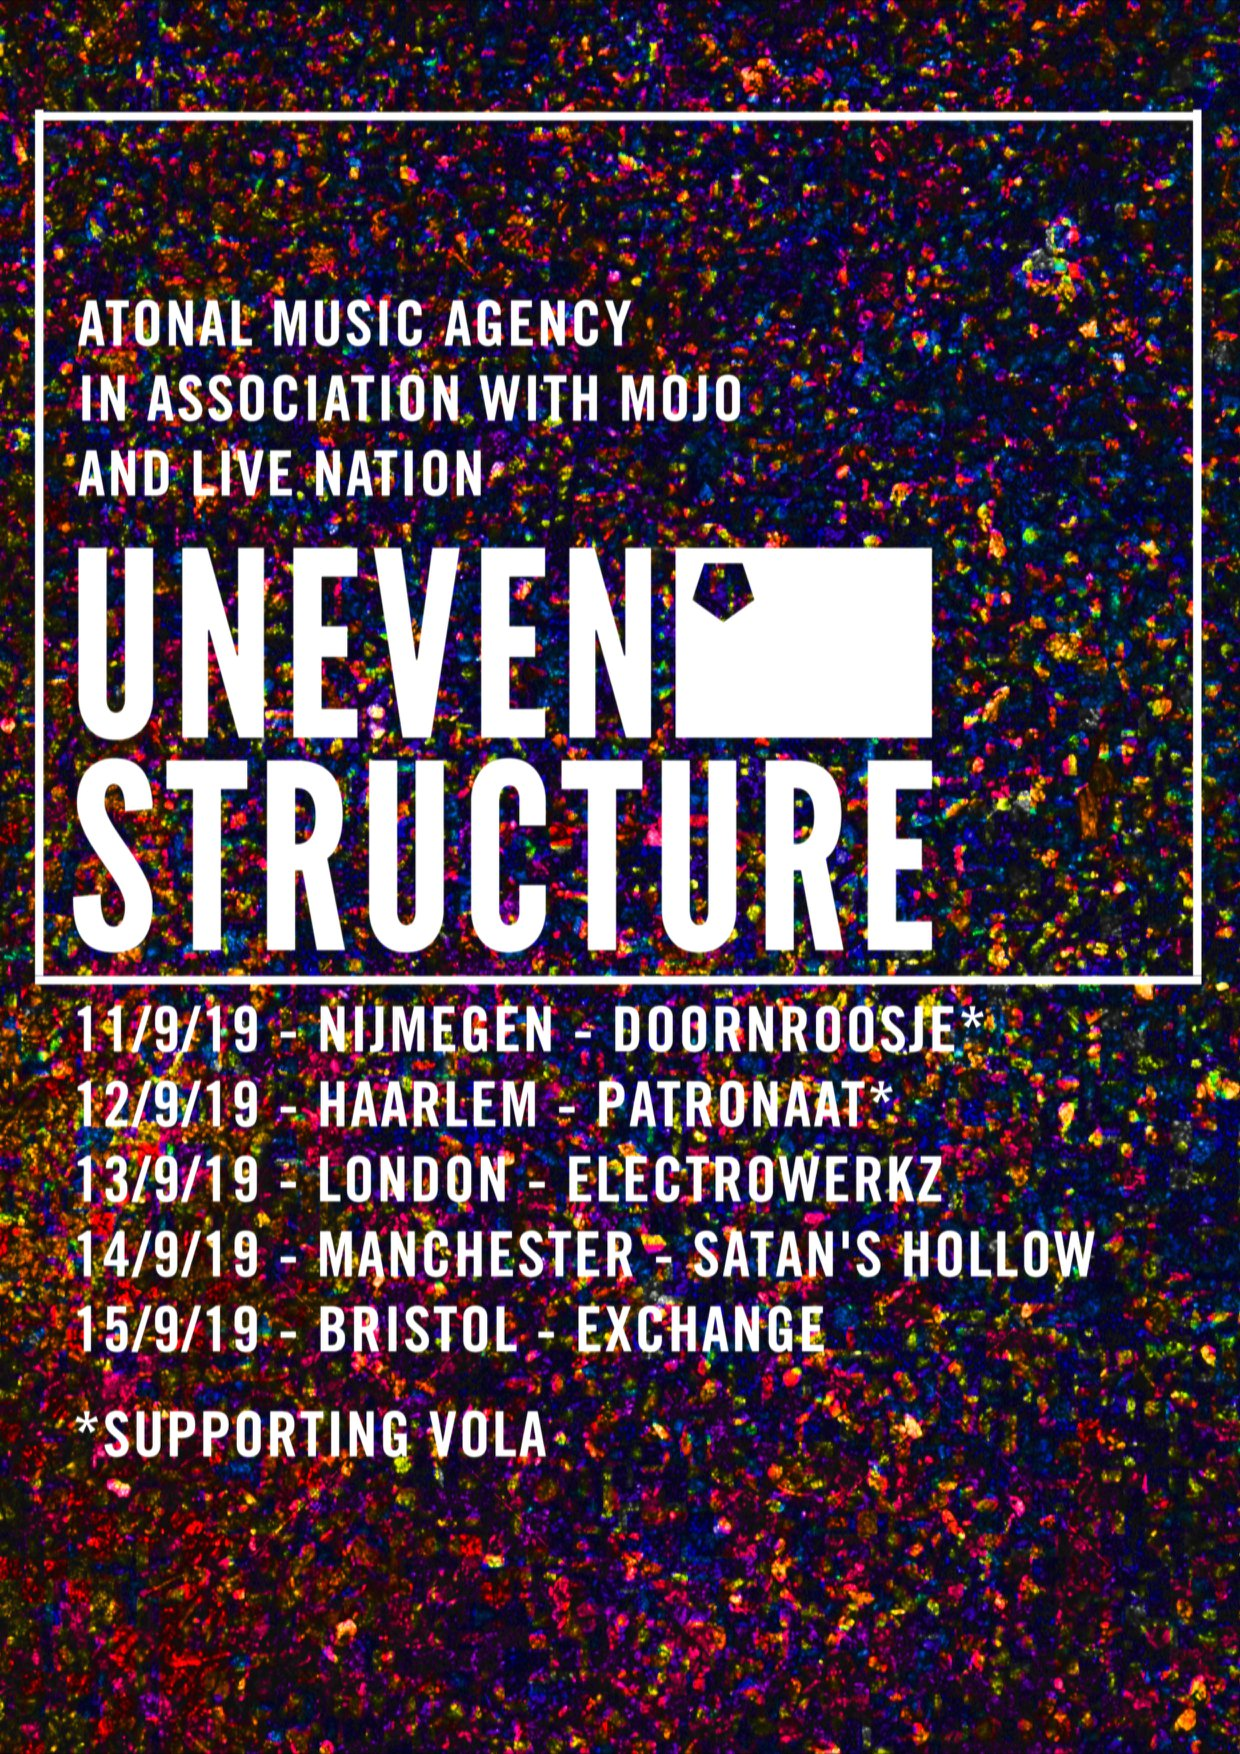 Uneven Structure Poster.jpg